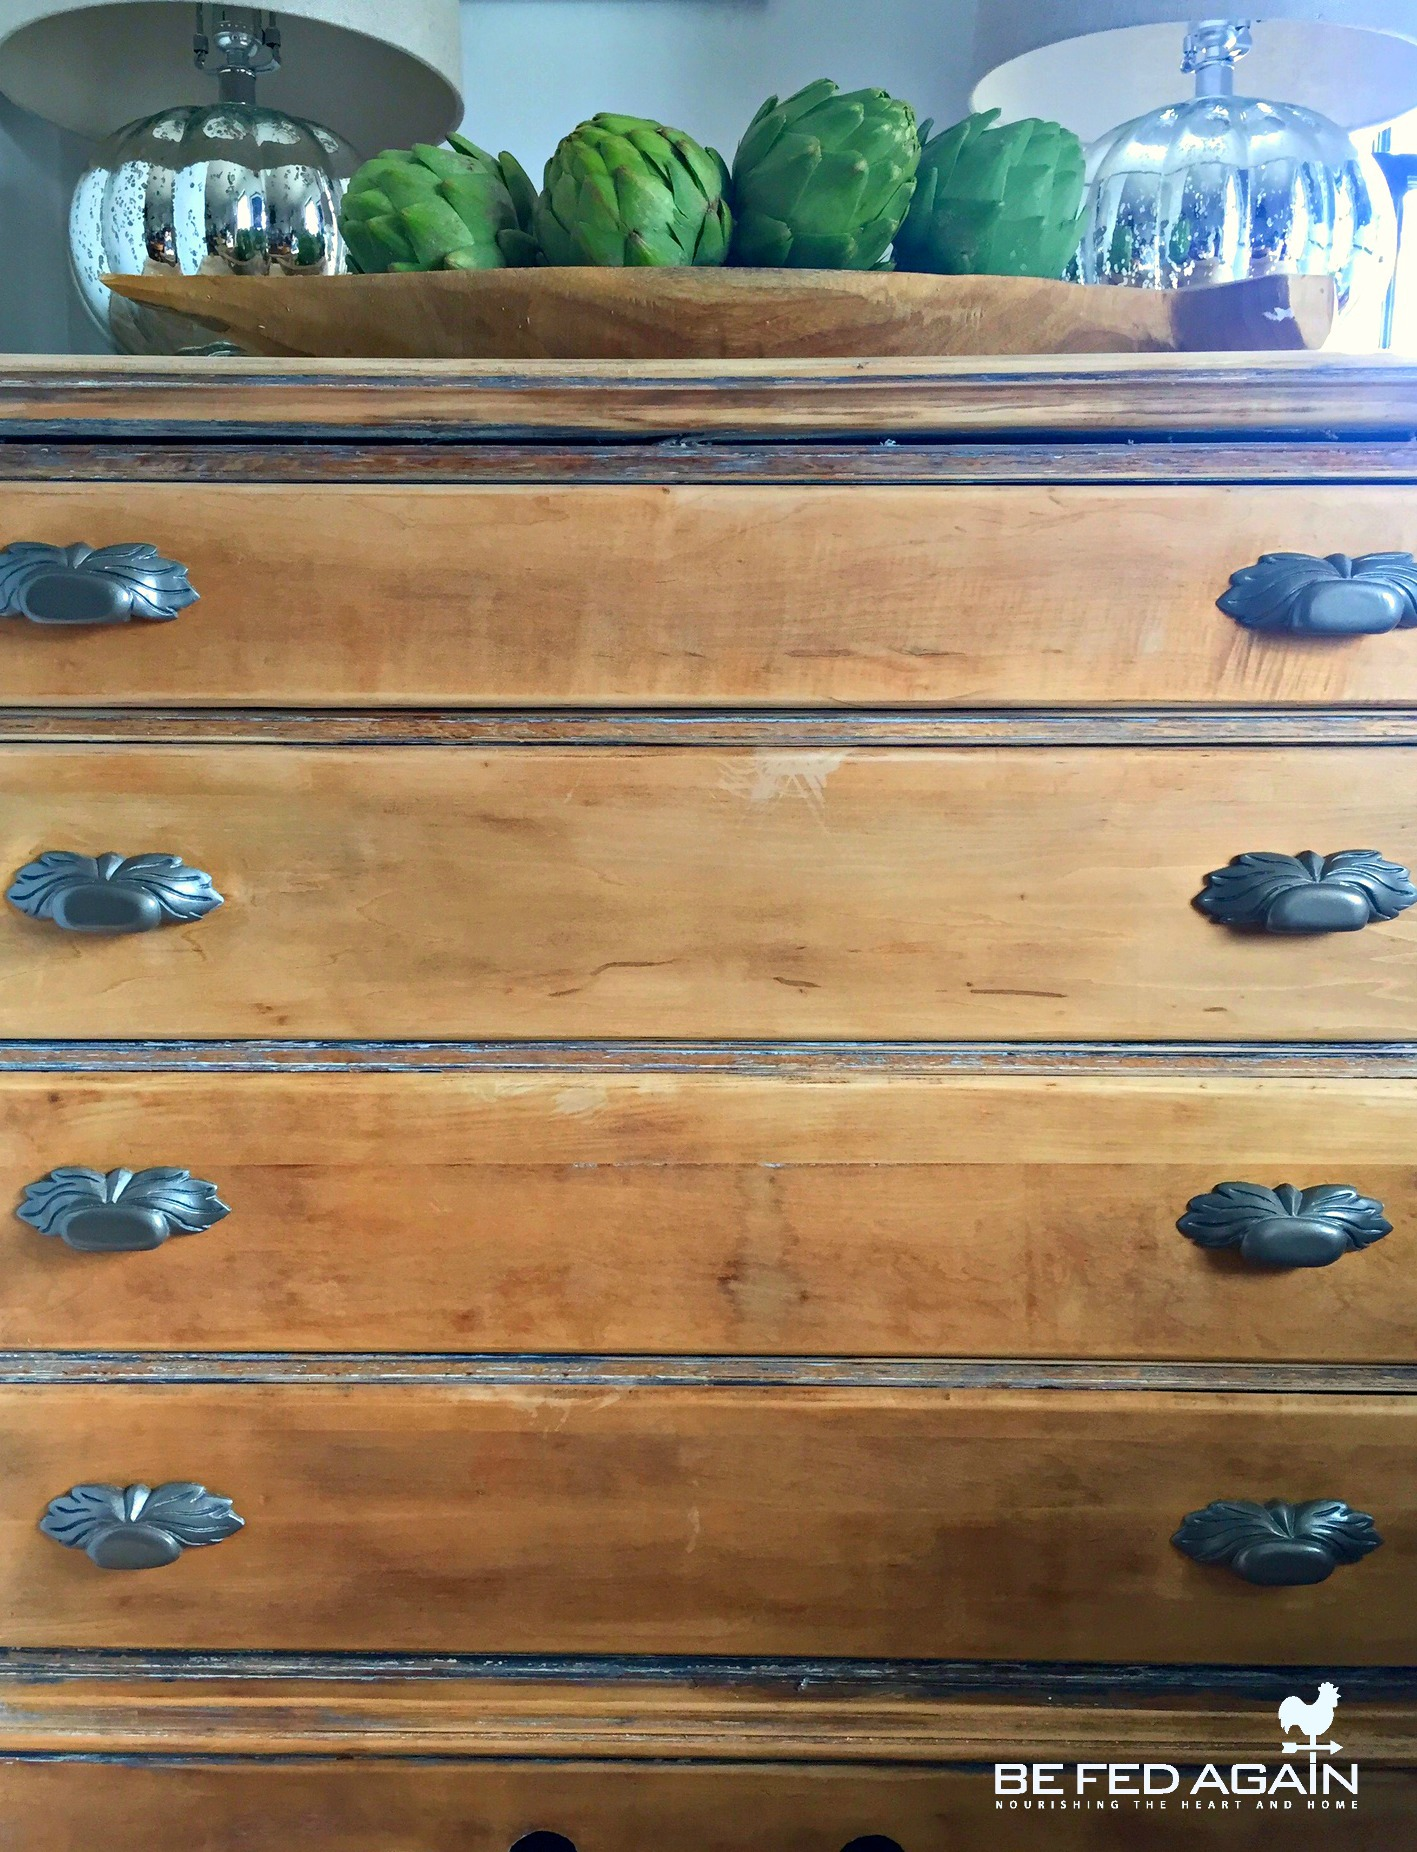 Wagner Heat Gun Brings New Life To East Lake Dresser + A Promotion!!